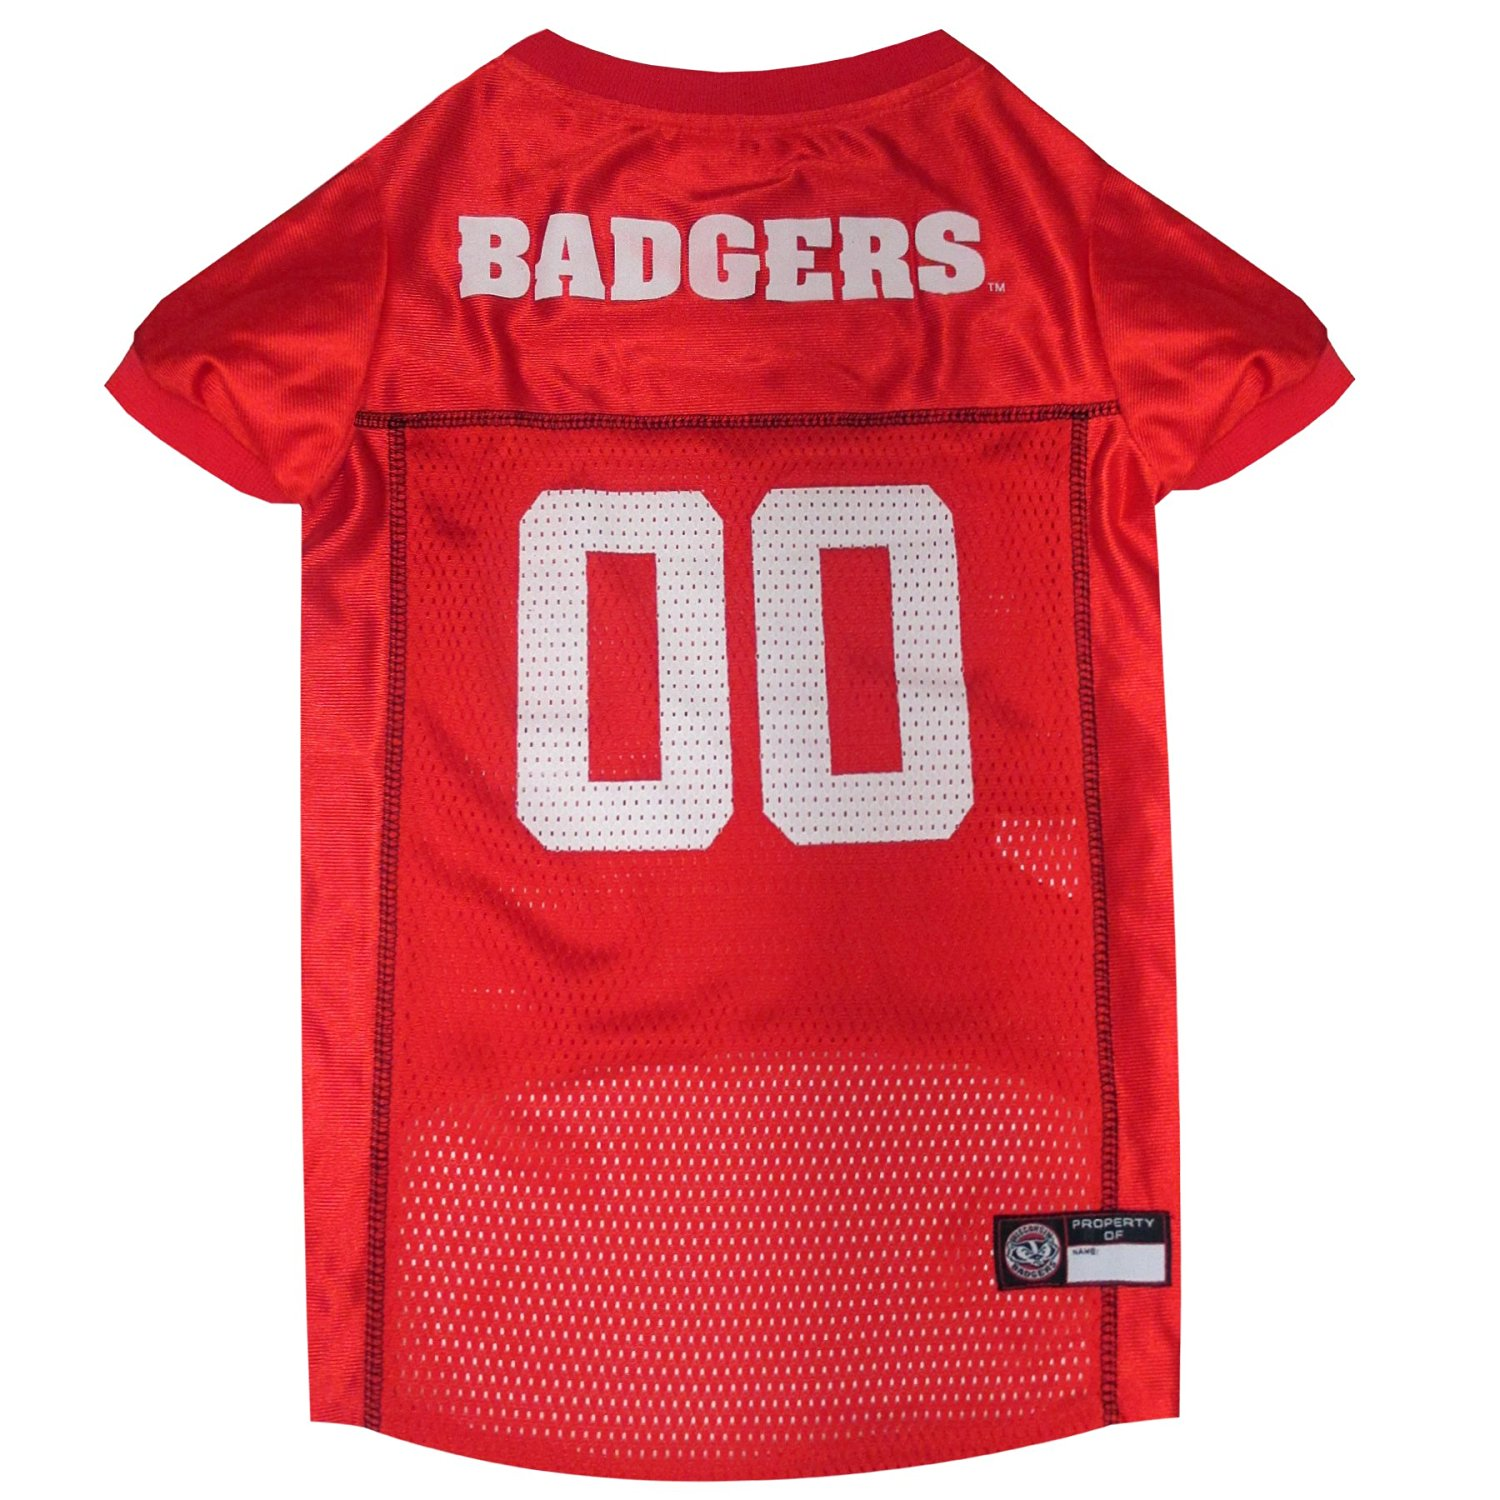 Pets First Co. Wisconsin Badgers Pet Jersey PartNumber: 02416628000P KsnValue: 9204787 MfgPartNumber: WI-4006-XXL